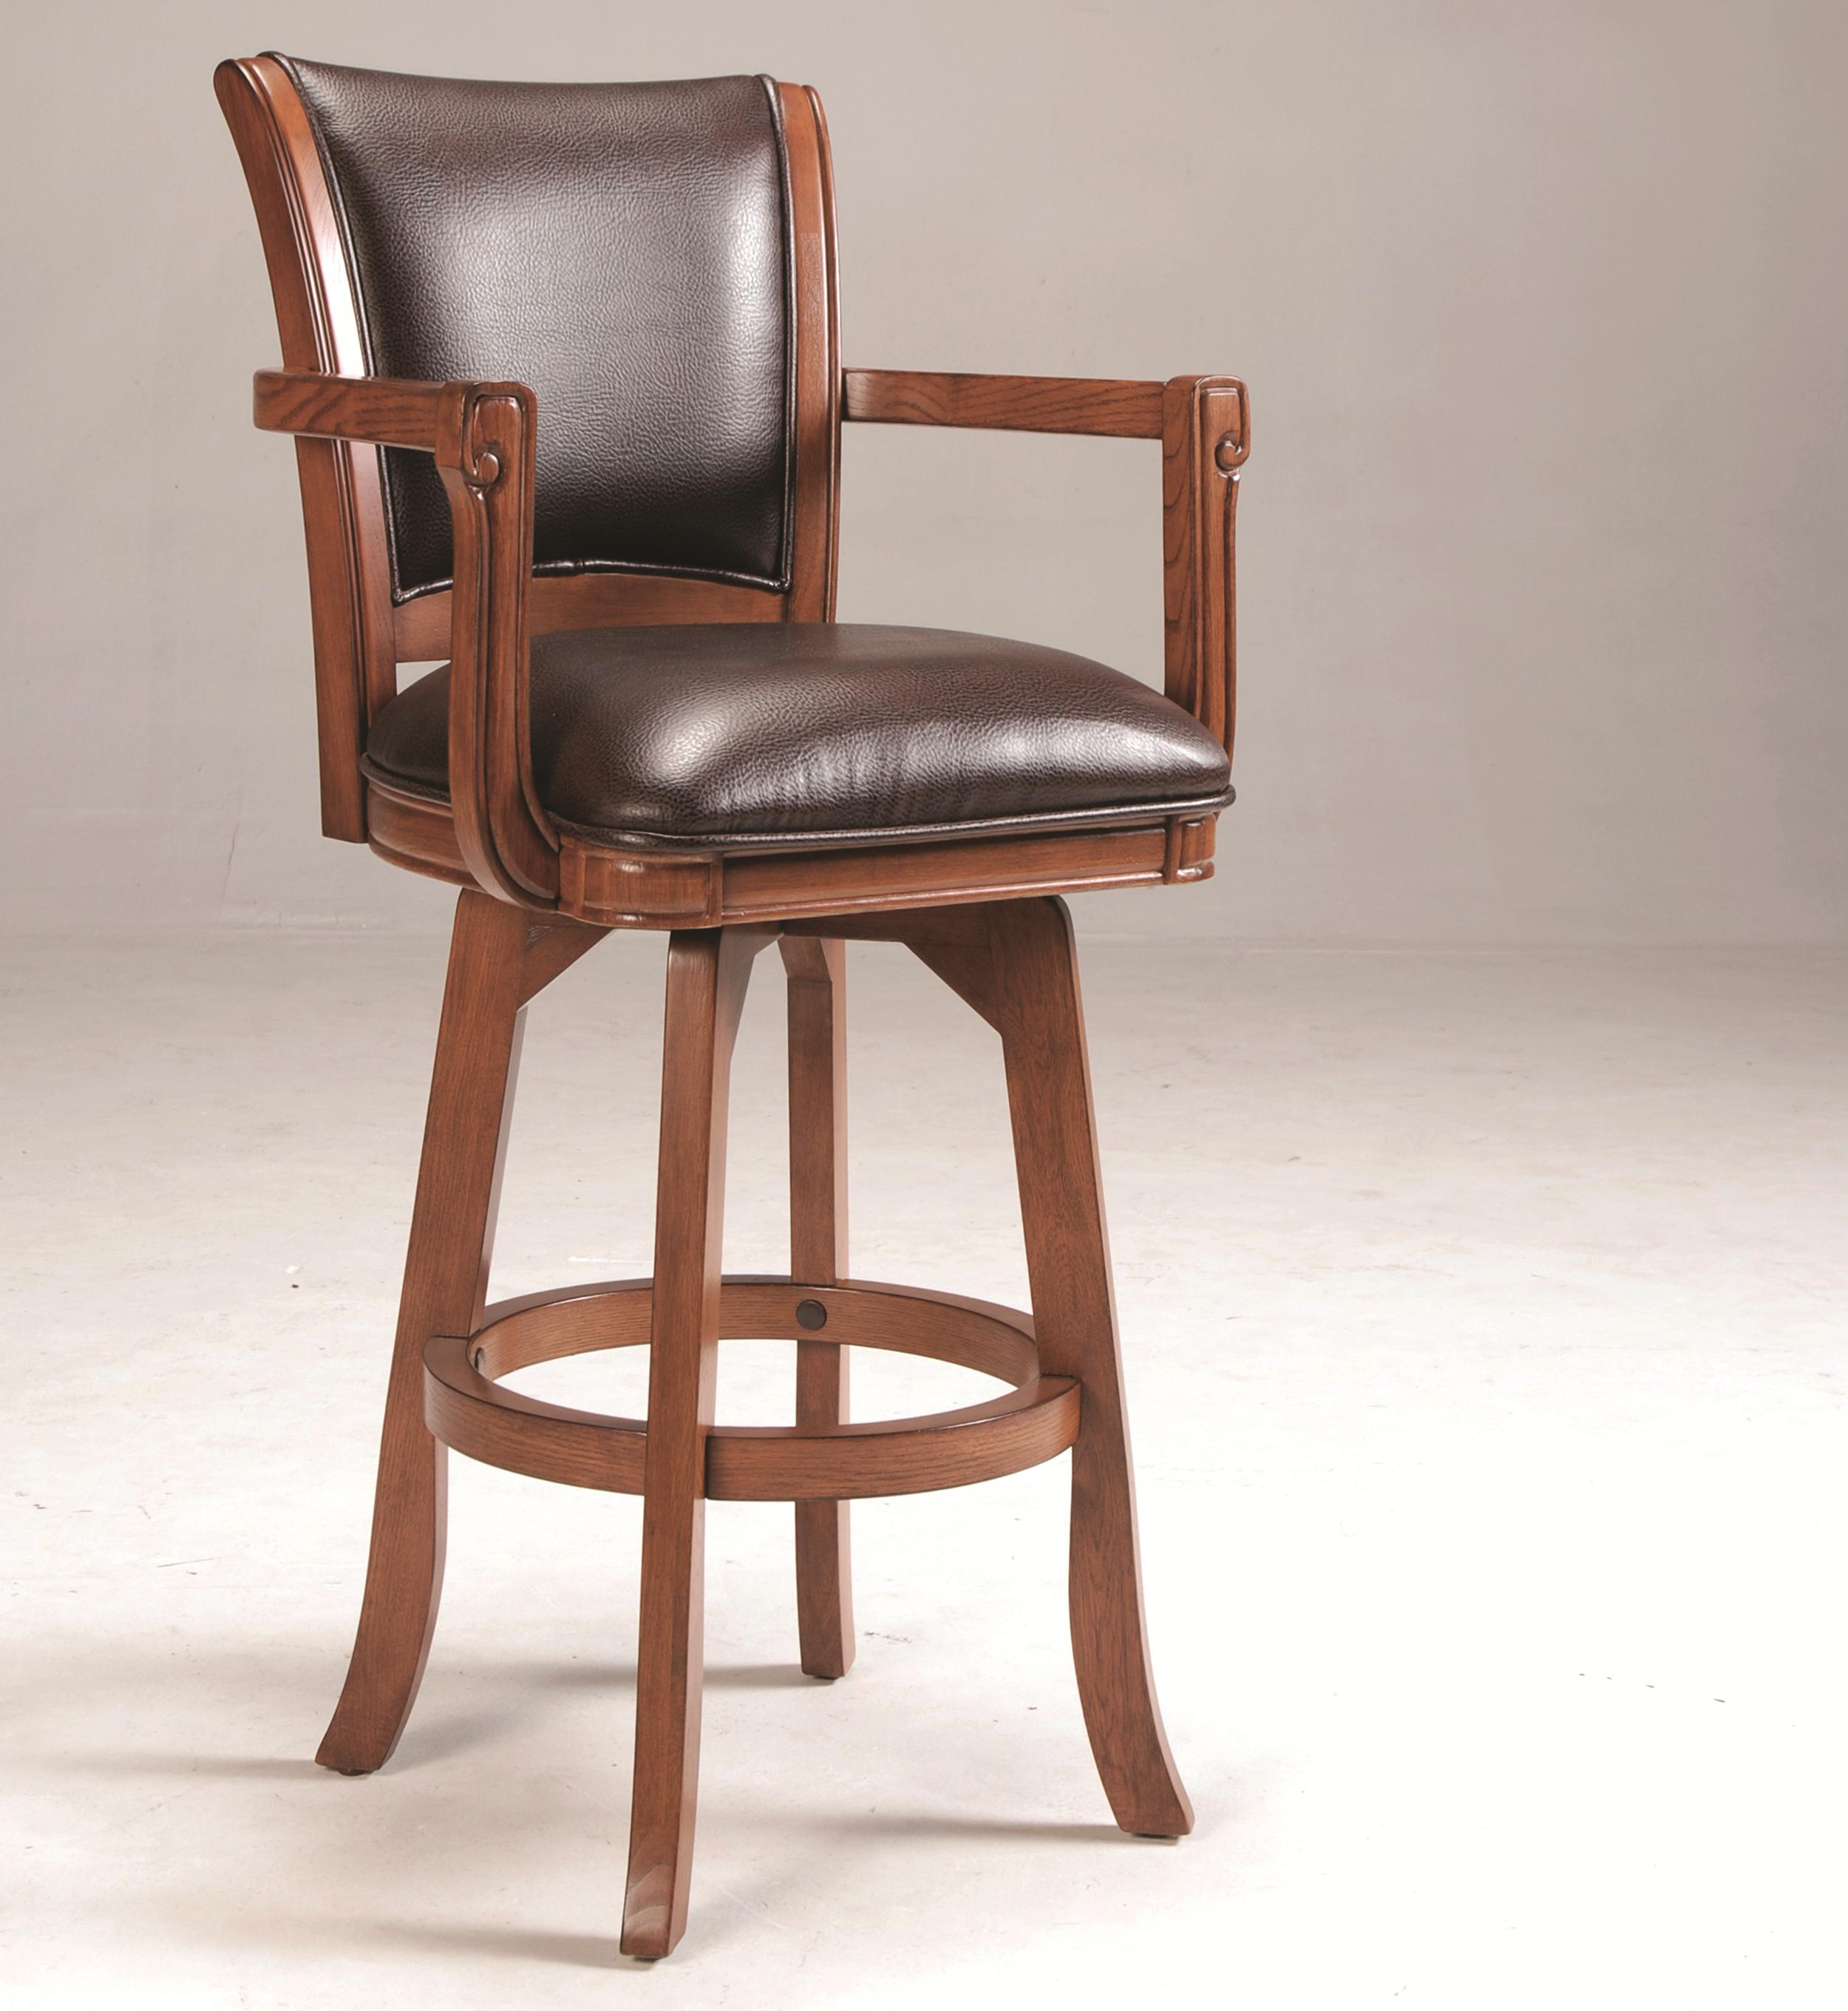 Hillsdale Park View Swivel Bar Stool - Item Number: 4186-830